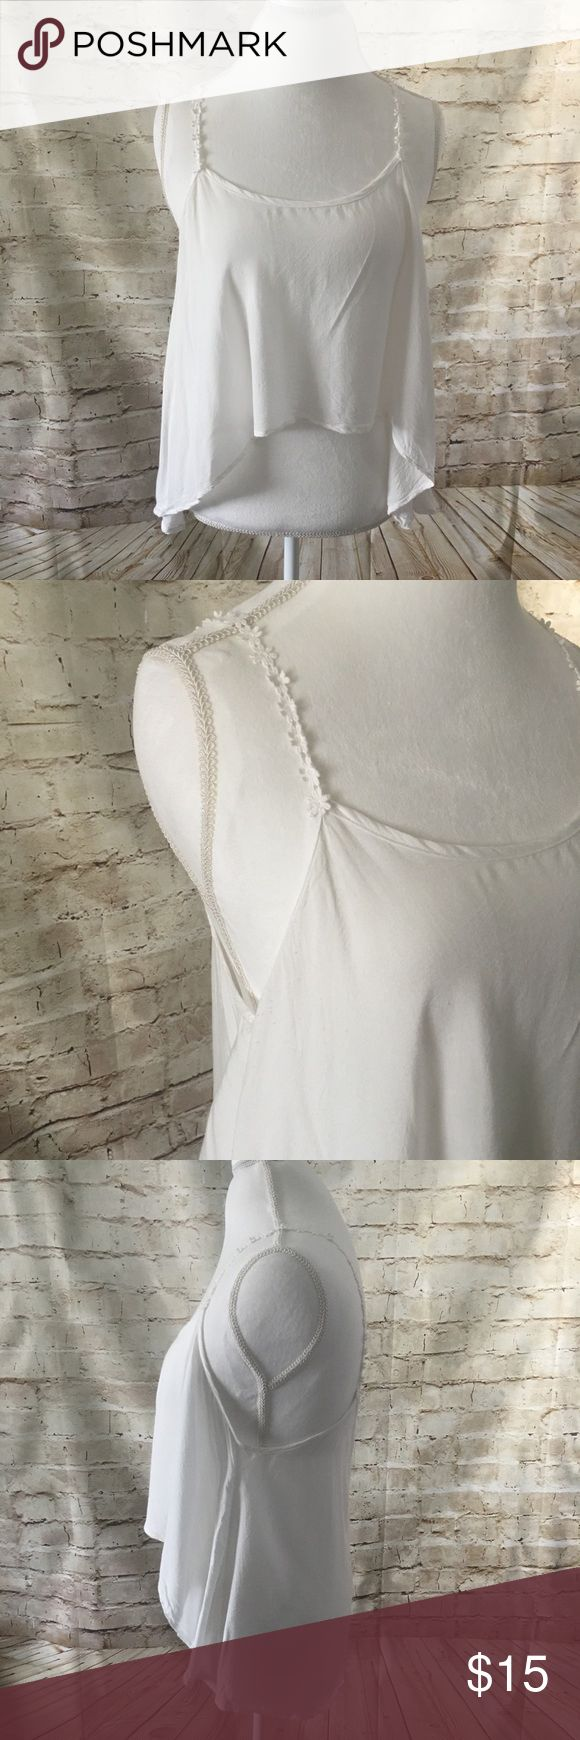 Tobi Daisy Strap Flowy Cropped Top Adorable Flowy white crop top from online retailer TOBI! Excellent condition, no stains. Really hard to pass up these daisy straps. Make an offer now! Tobi Tops Tank Tops